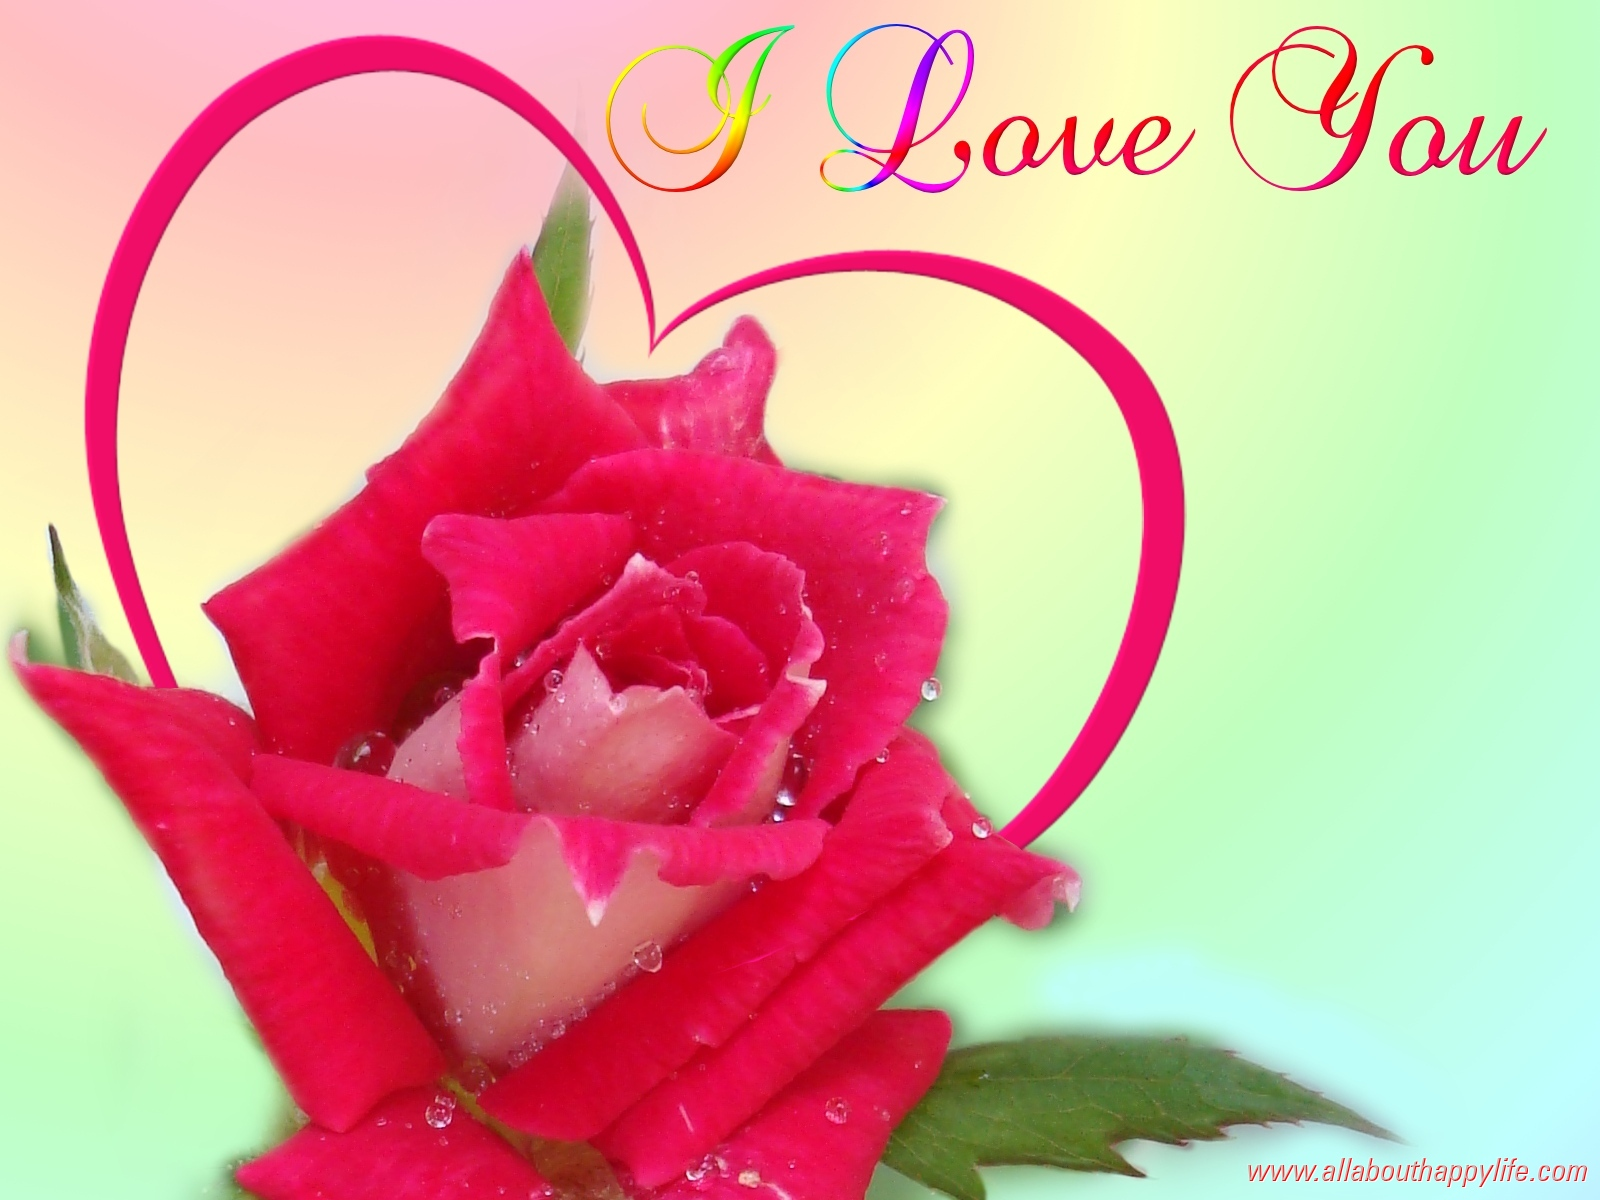 I Love You Hd wallpaper for download